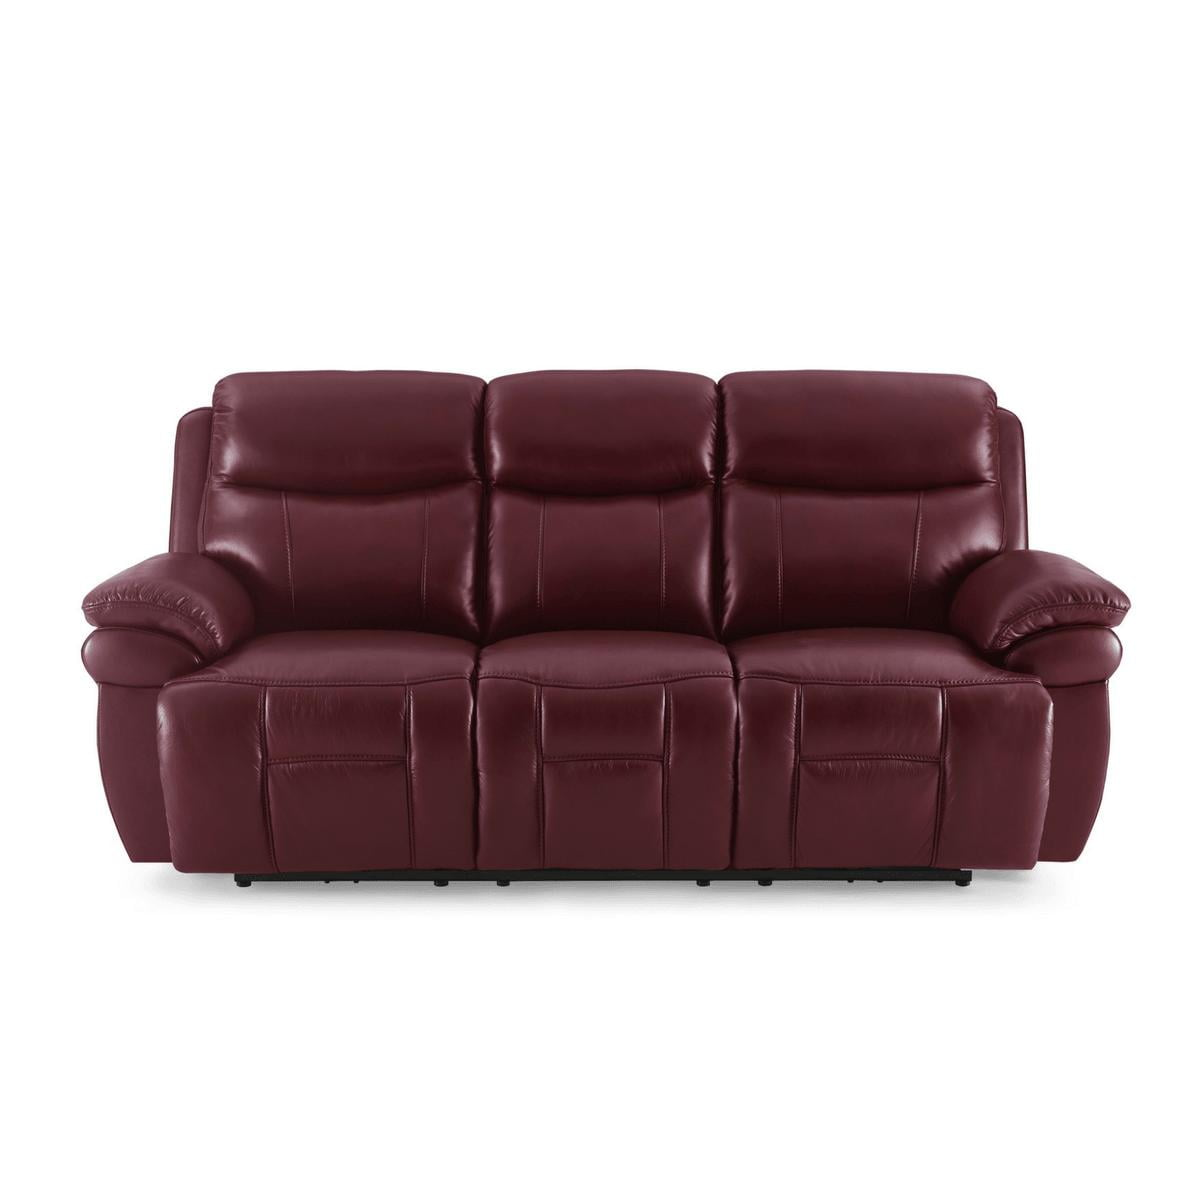 Chicago 3 Seater - Recliner